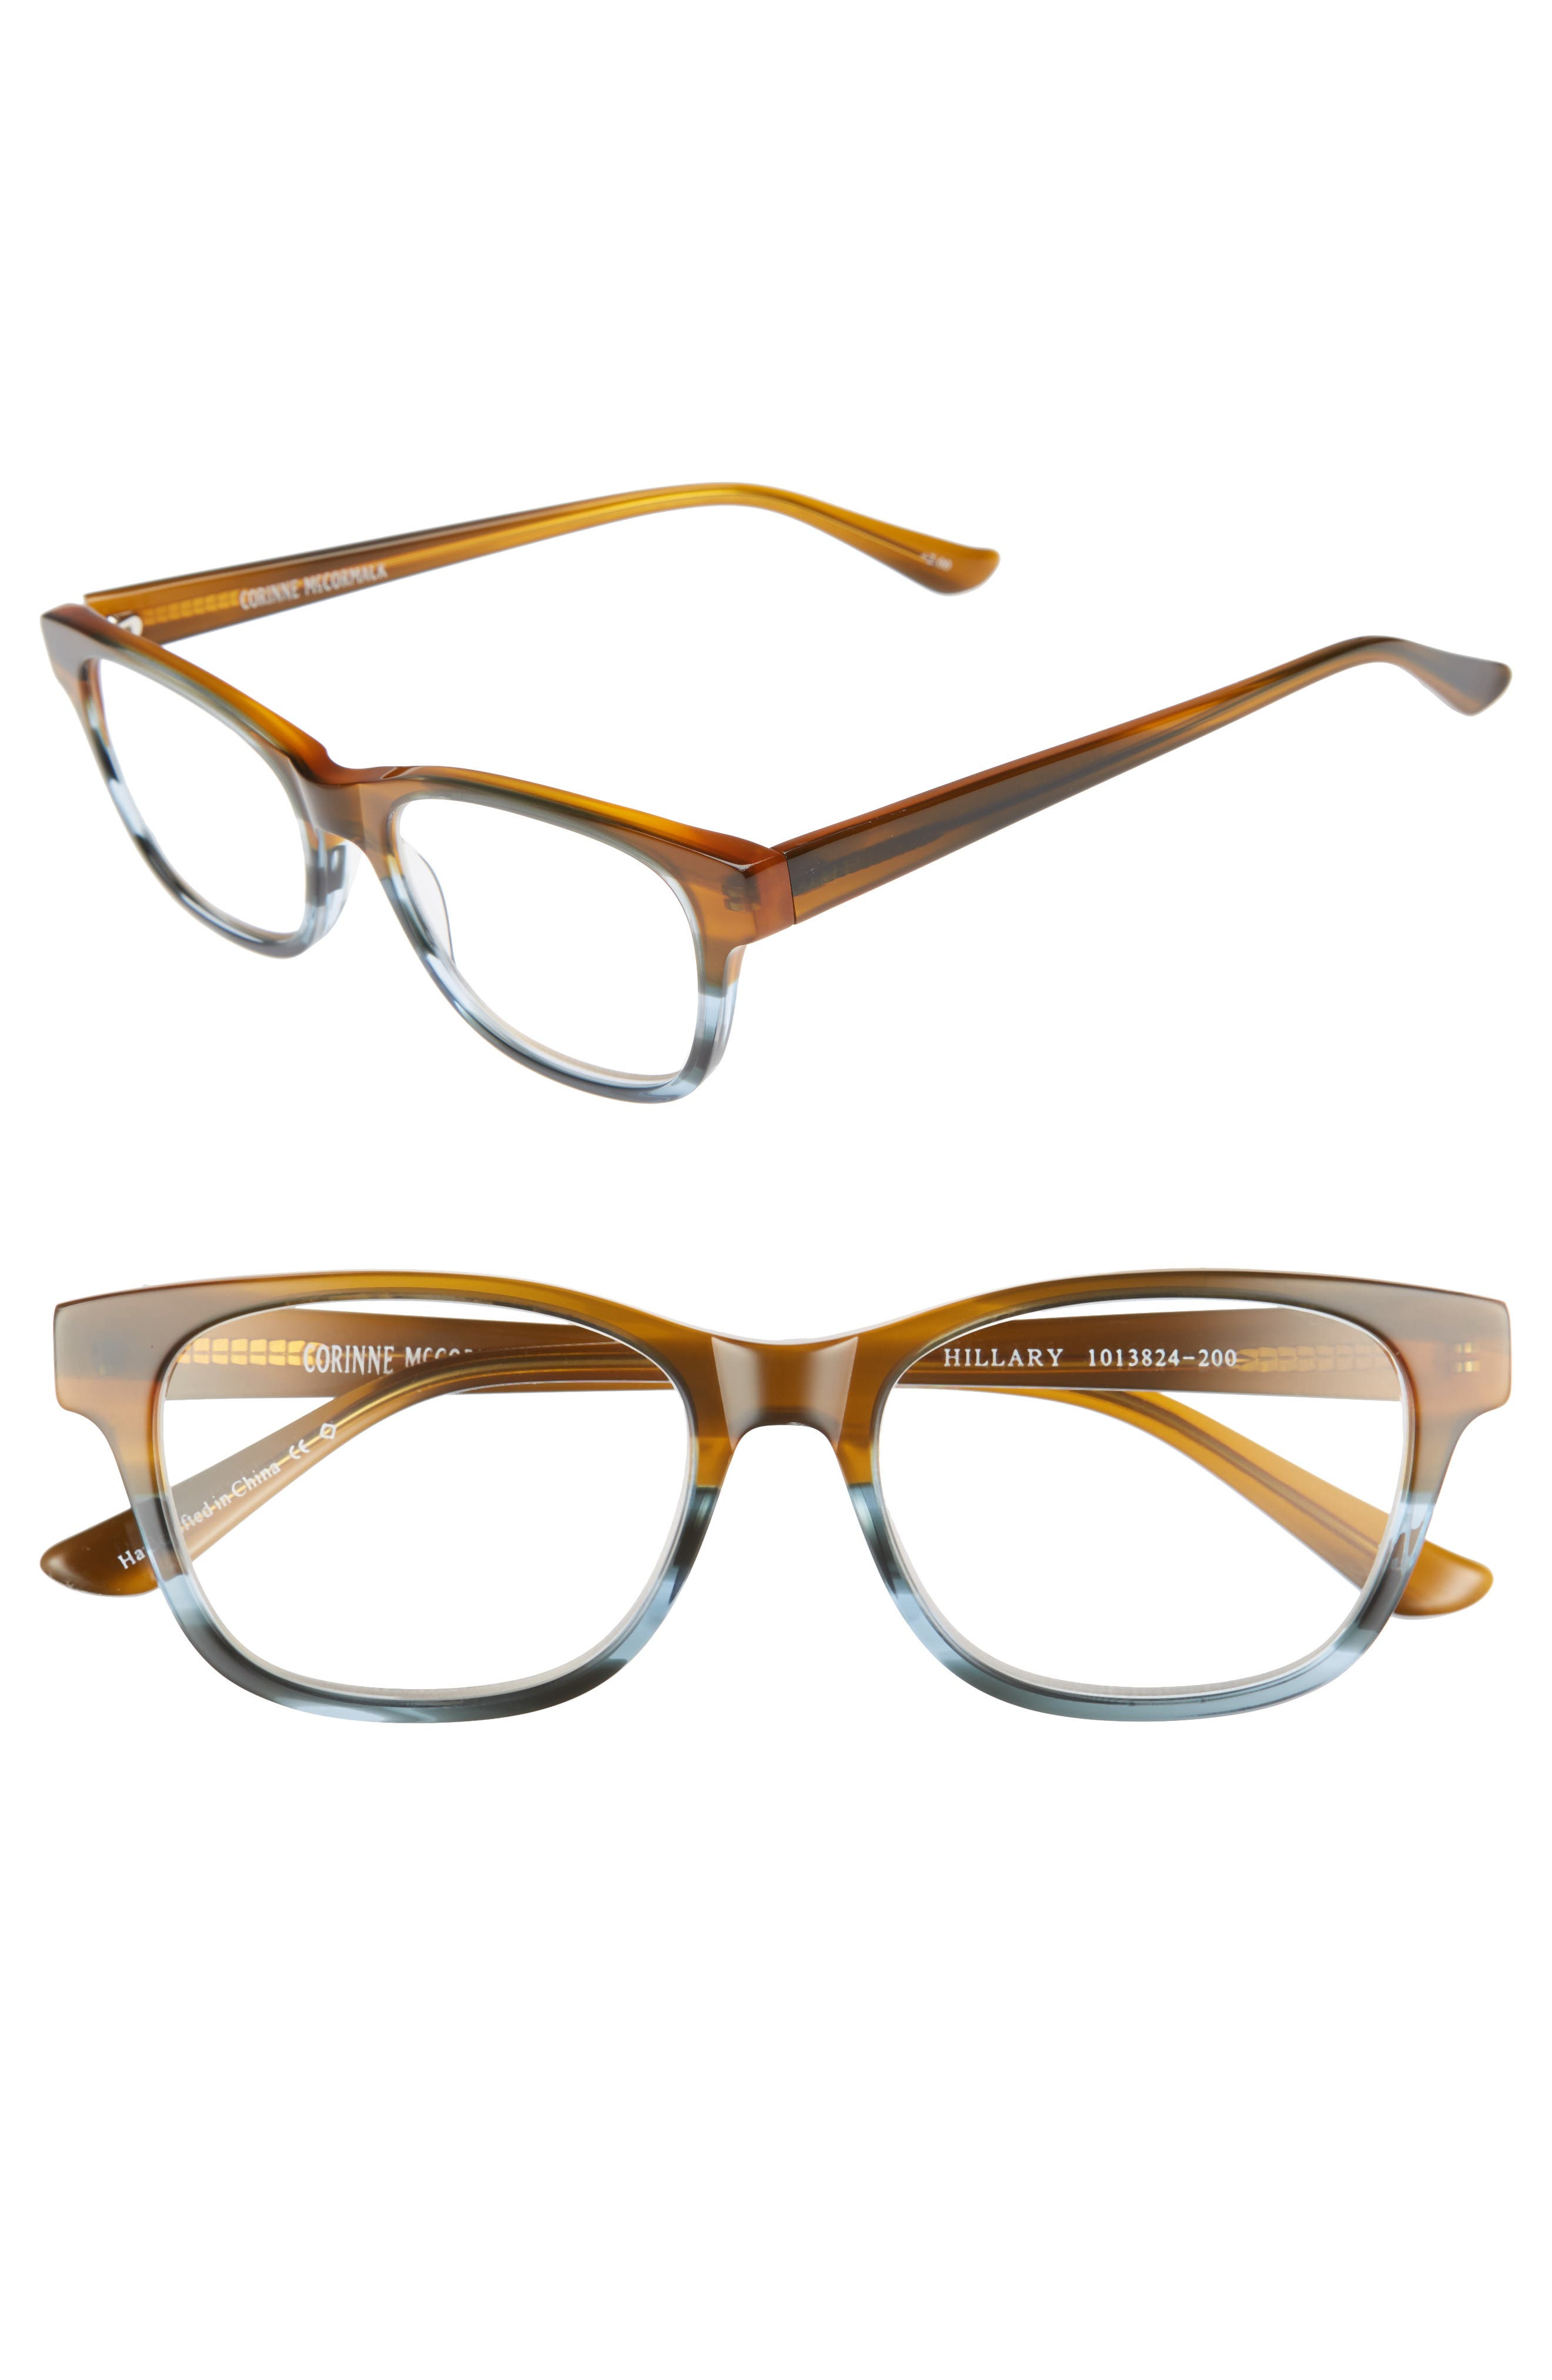 Hillary 50mm Reading Glasses,                         Main,                         color, 200